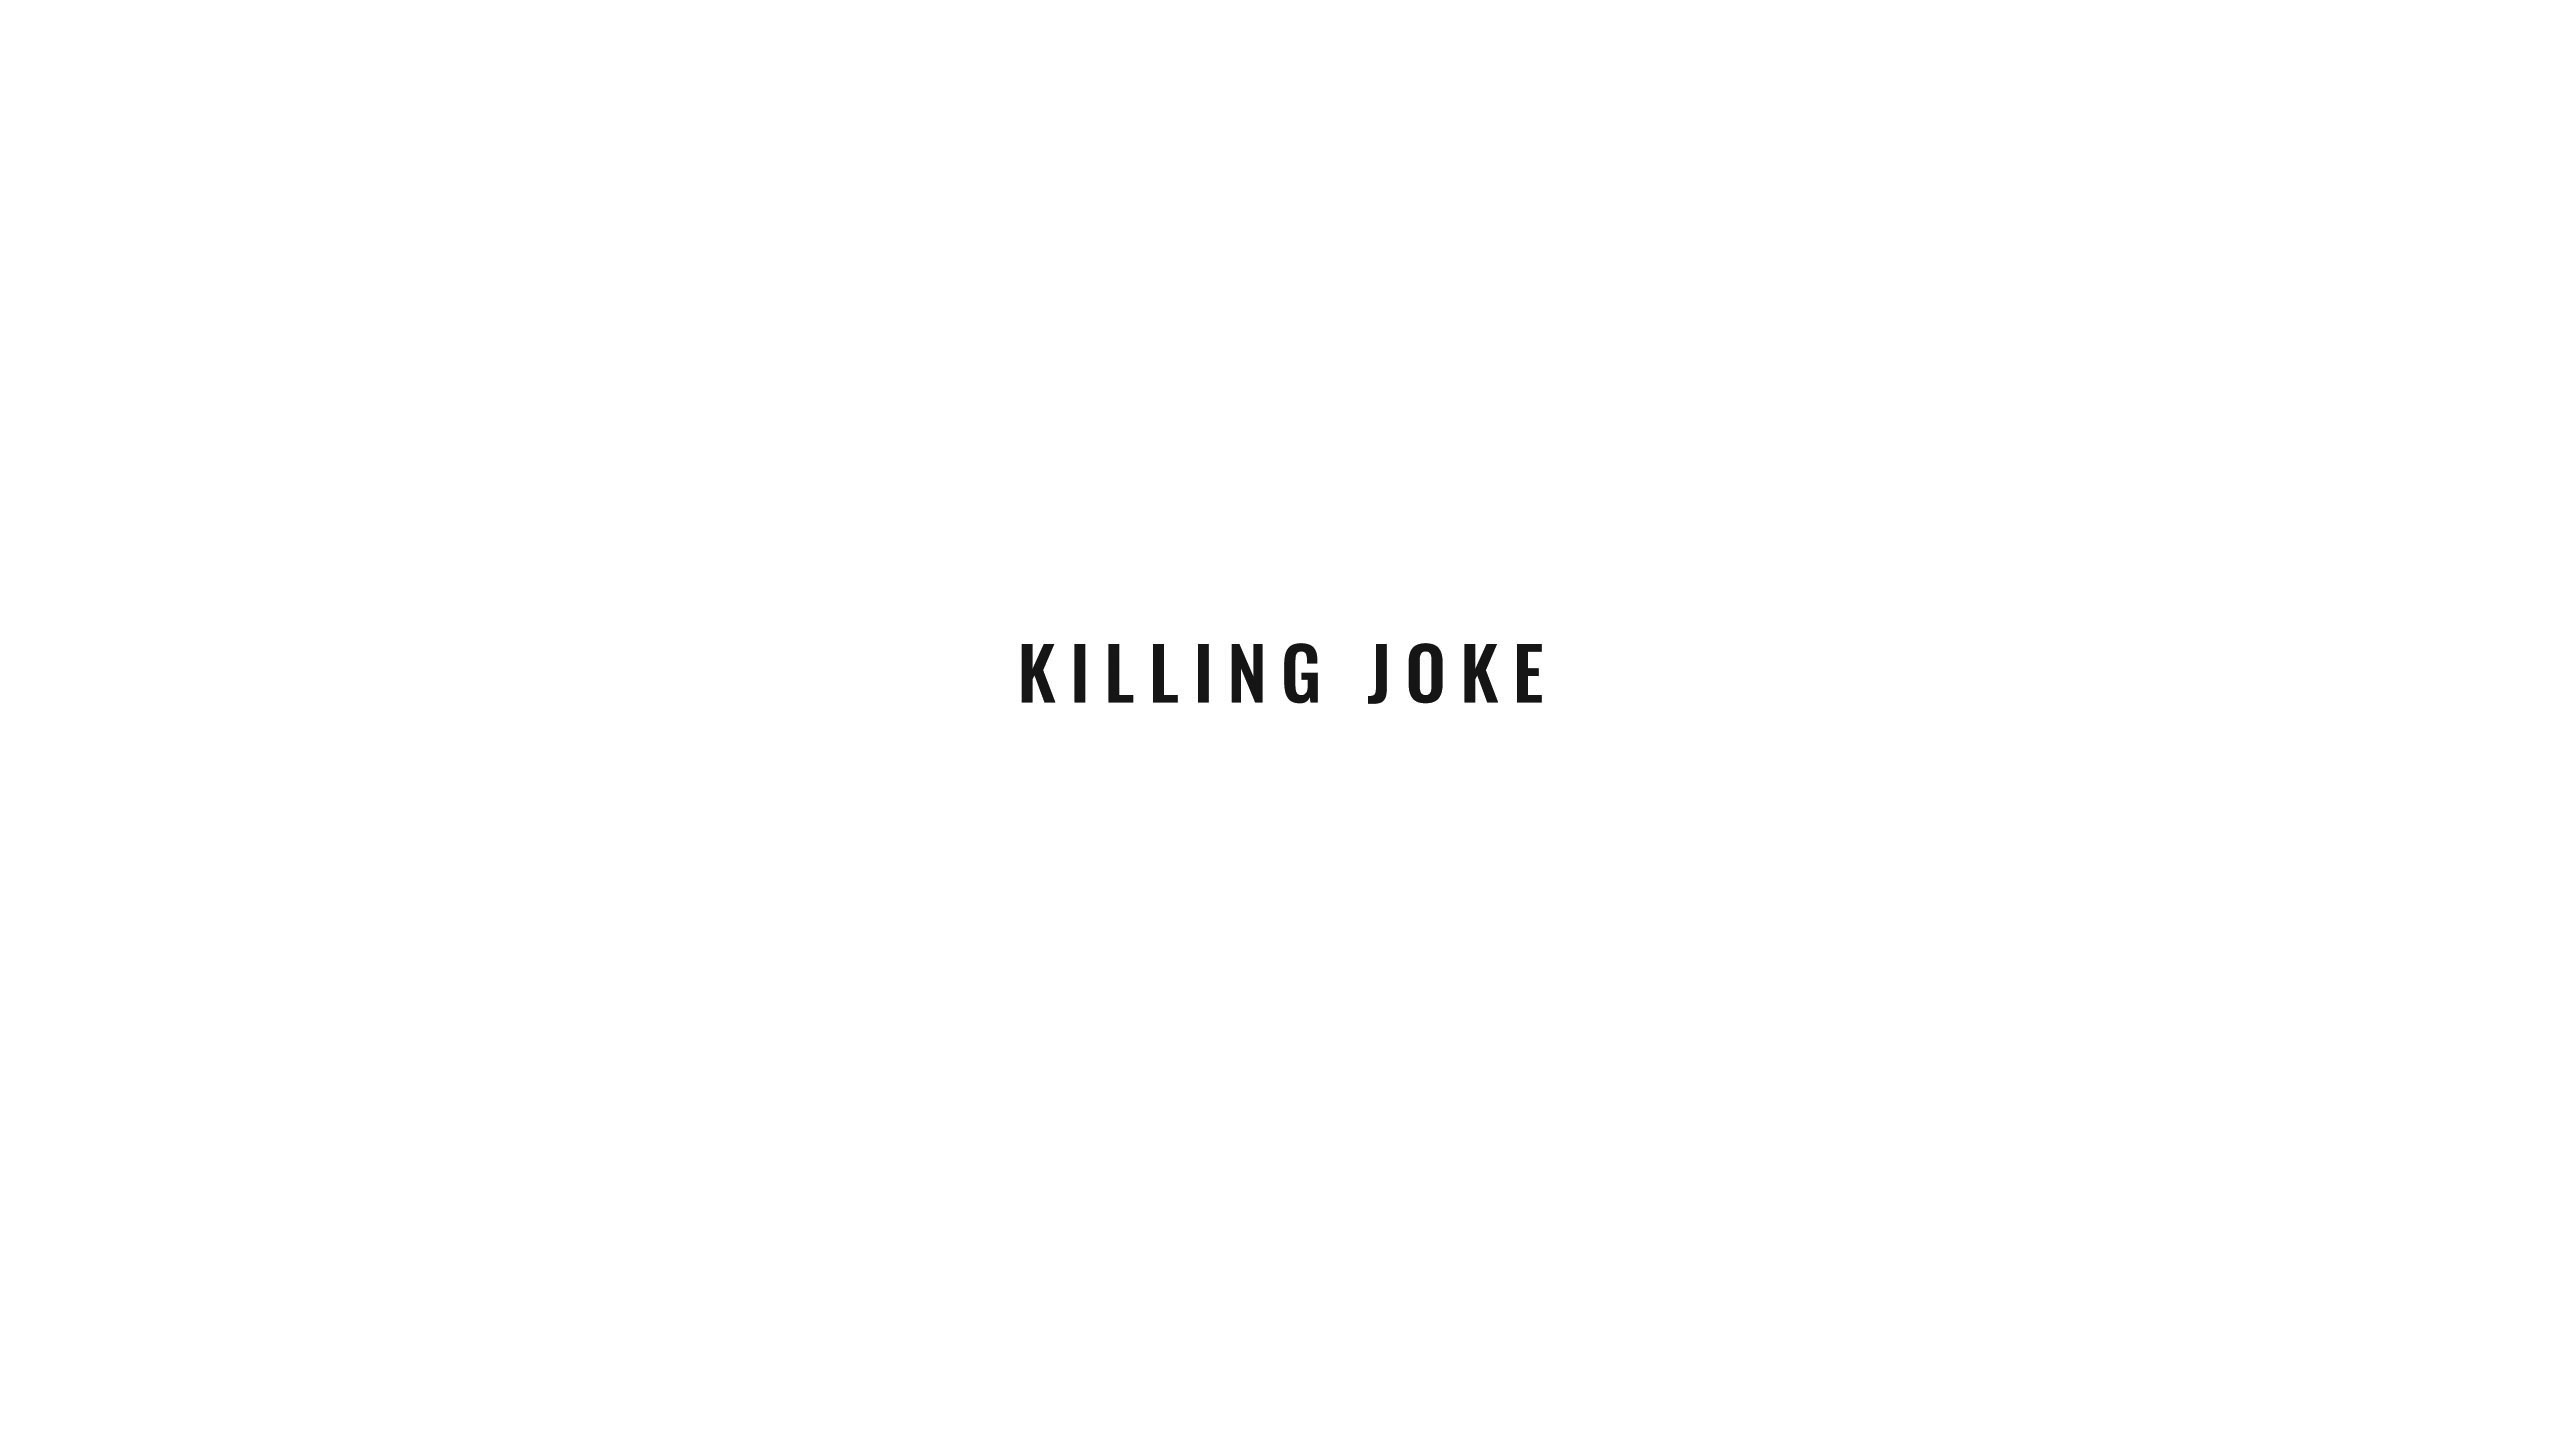 1a_Text_KILLING-JOKE